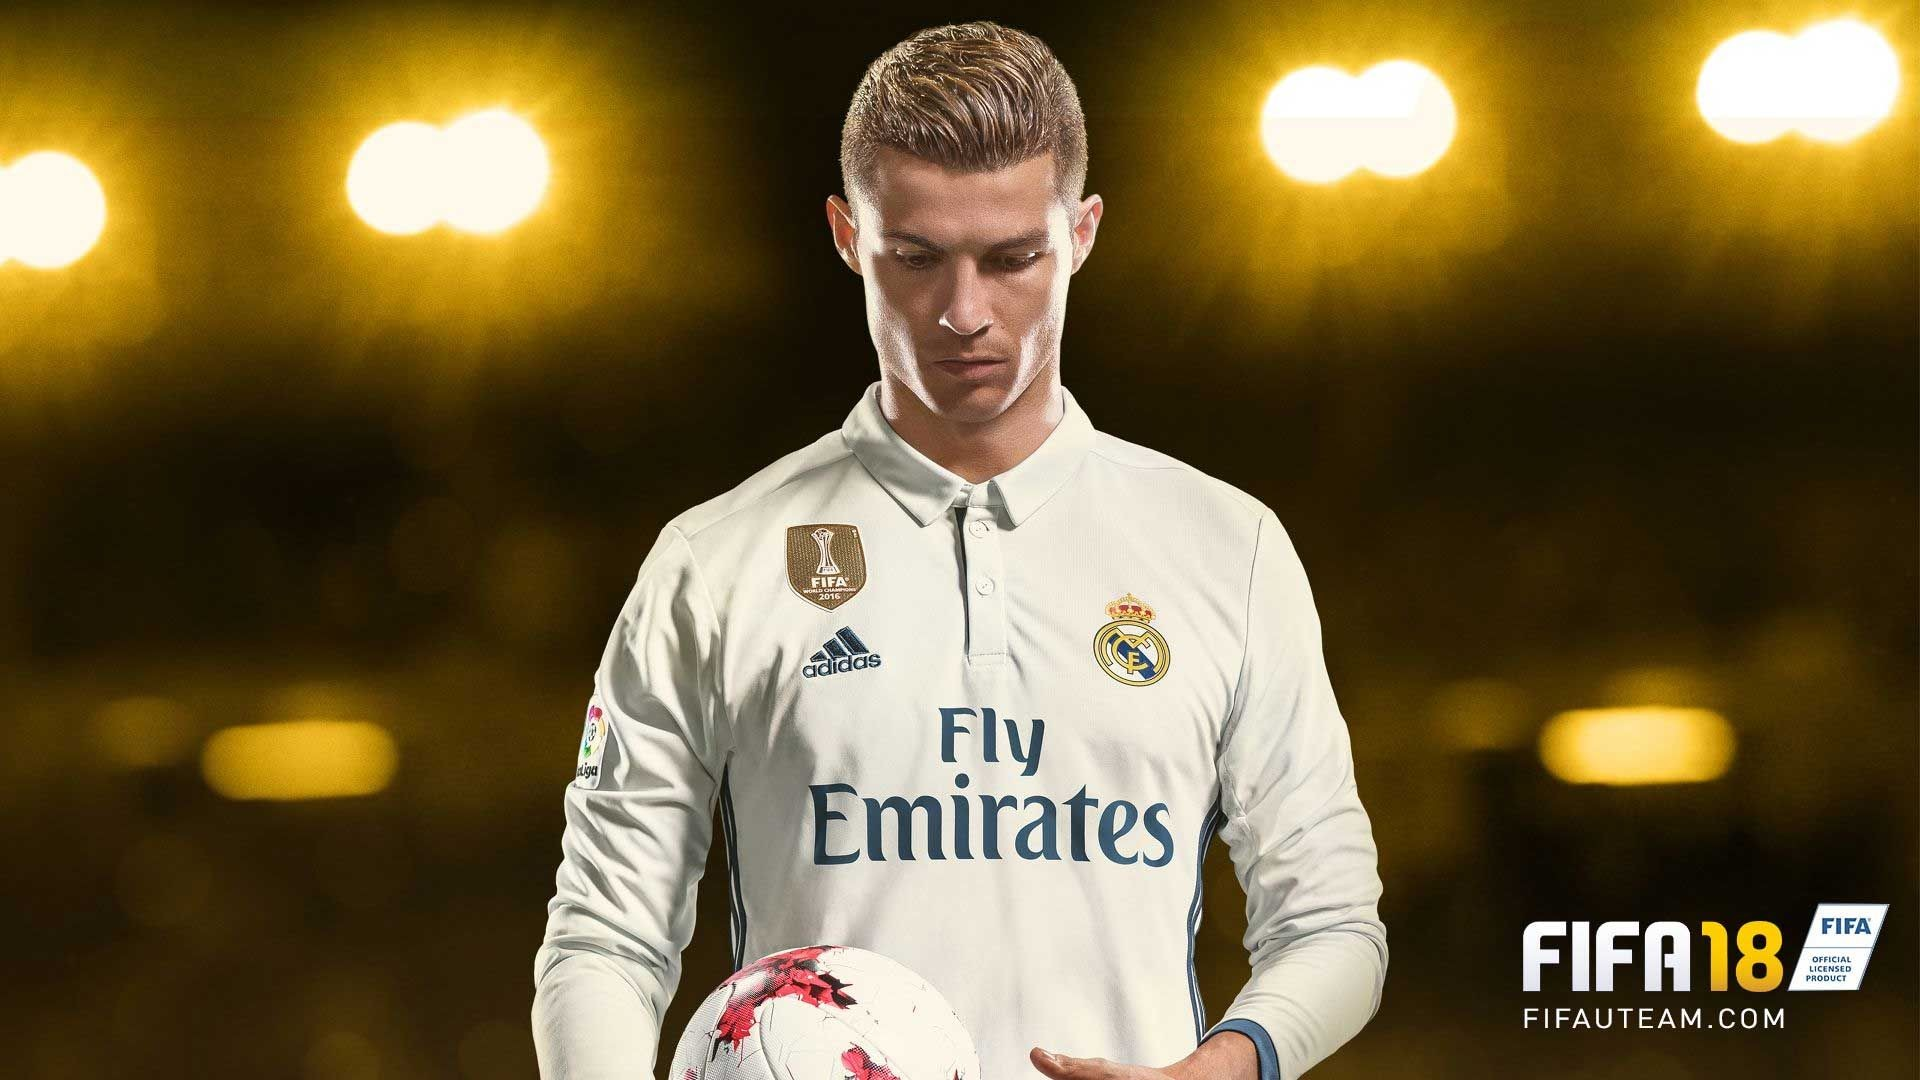 Cristiano Ronaldo Wallpapers 2018 Hd 81 Background Pictures